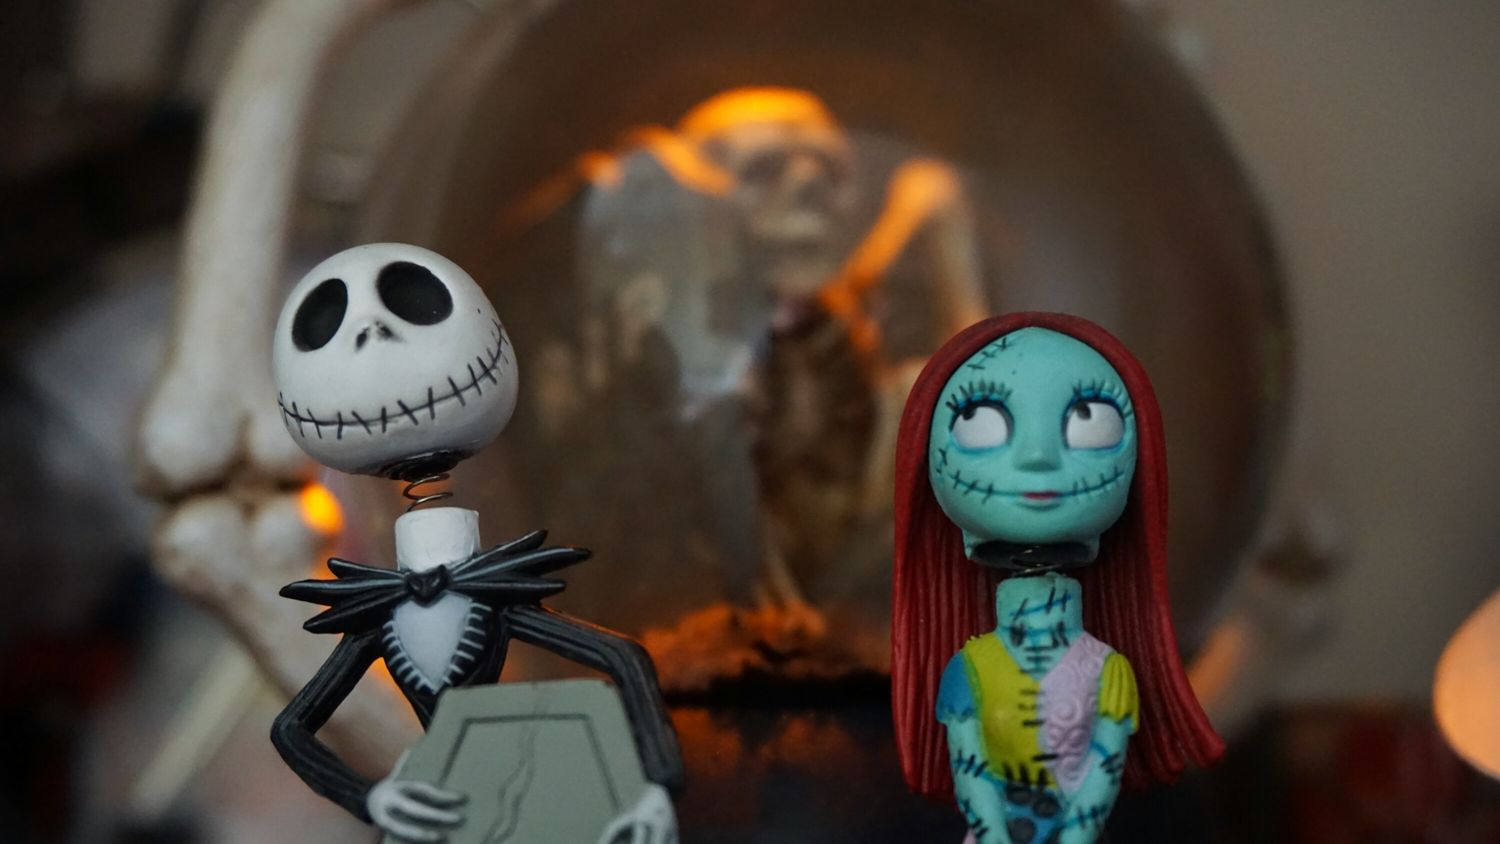 Human Representation No People Focus On Foreground Indoors  Close-up Doll Day Sceleton CorpseBride Nightmarebeforechristmas Man Women Manandwoman Love Cemetery Cemeterylovers